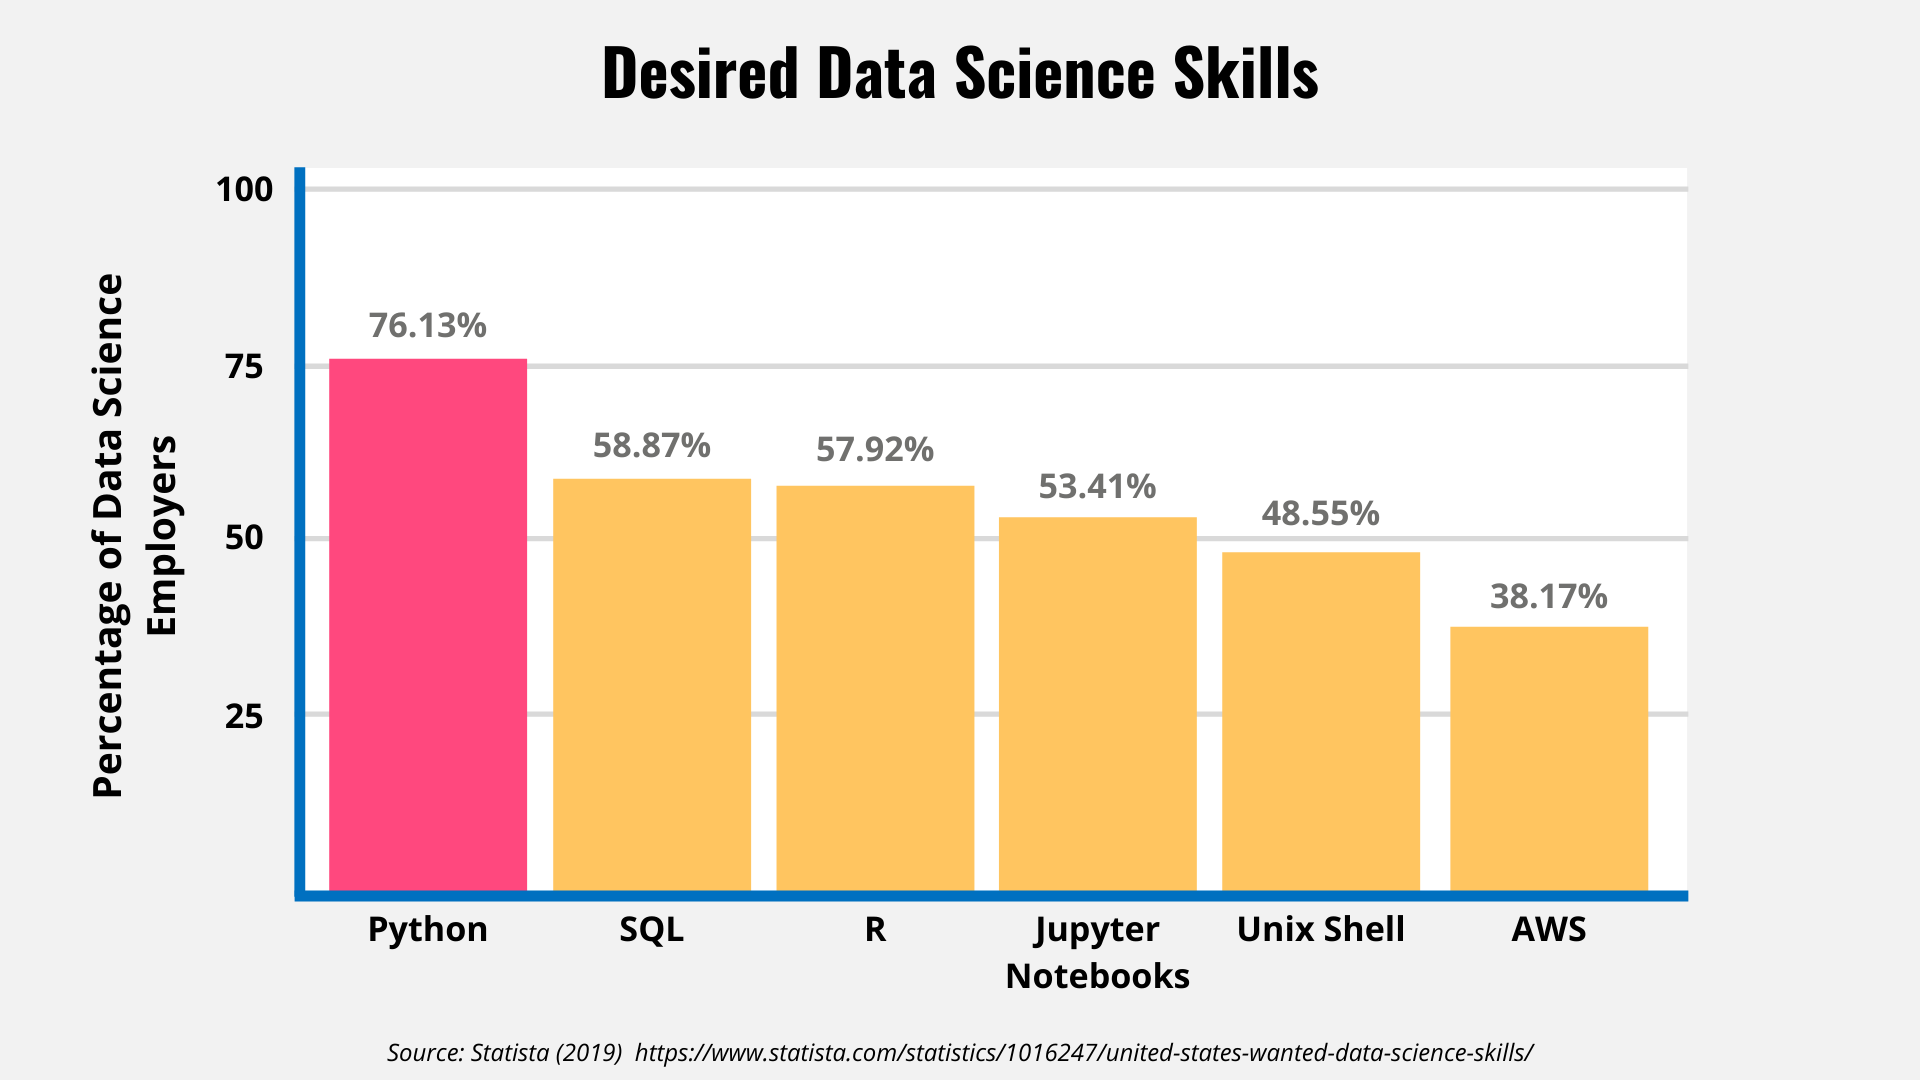 Bar graph showing Data Science requested skills